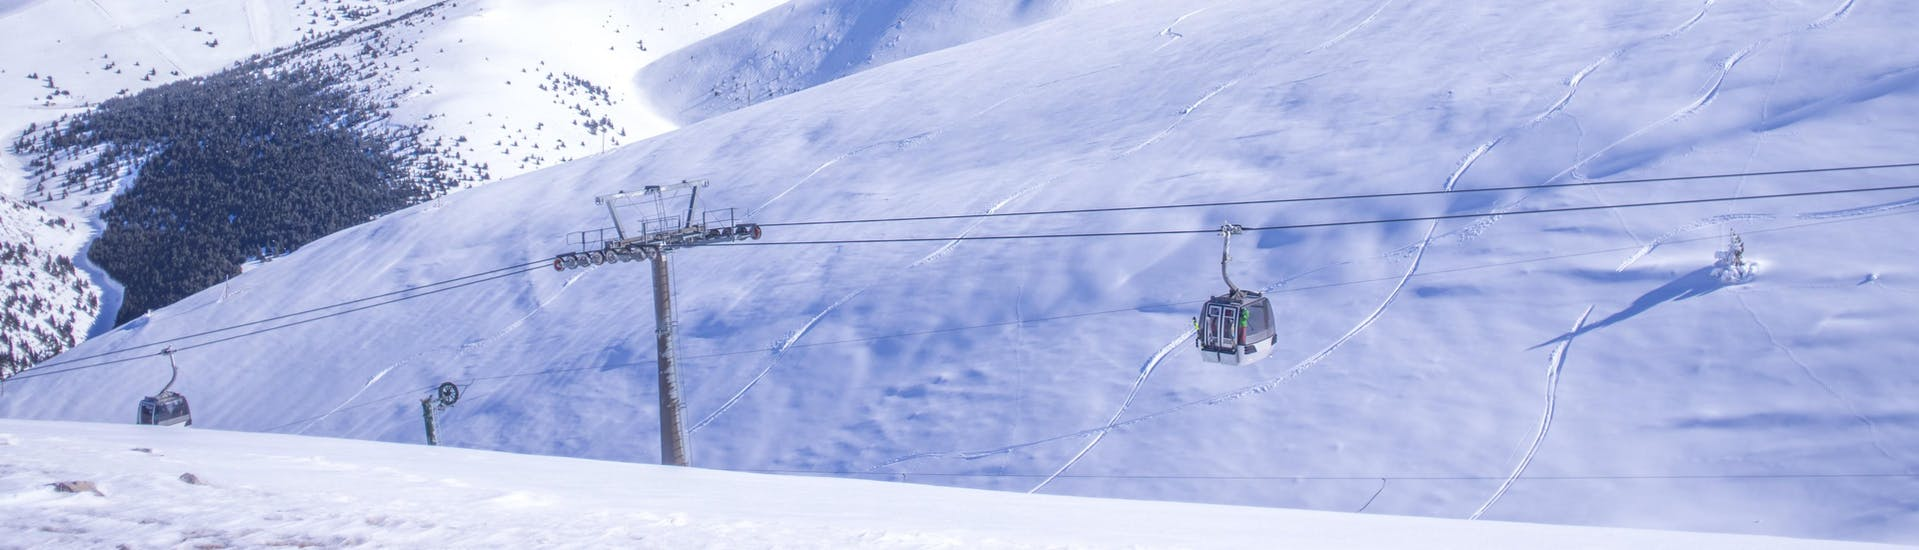 An image of a gondola carrying skiers up to the top of the mountain in the Catalonian ski resort of La Molina, where visitors can book ski lessons with one of the local ski schools.